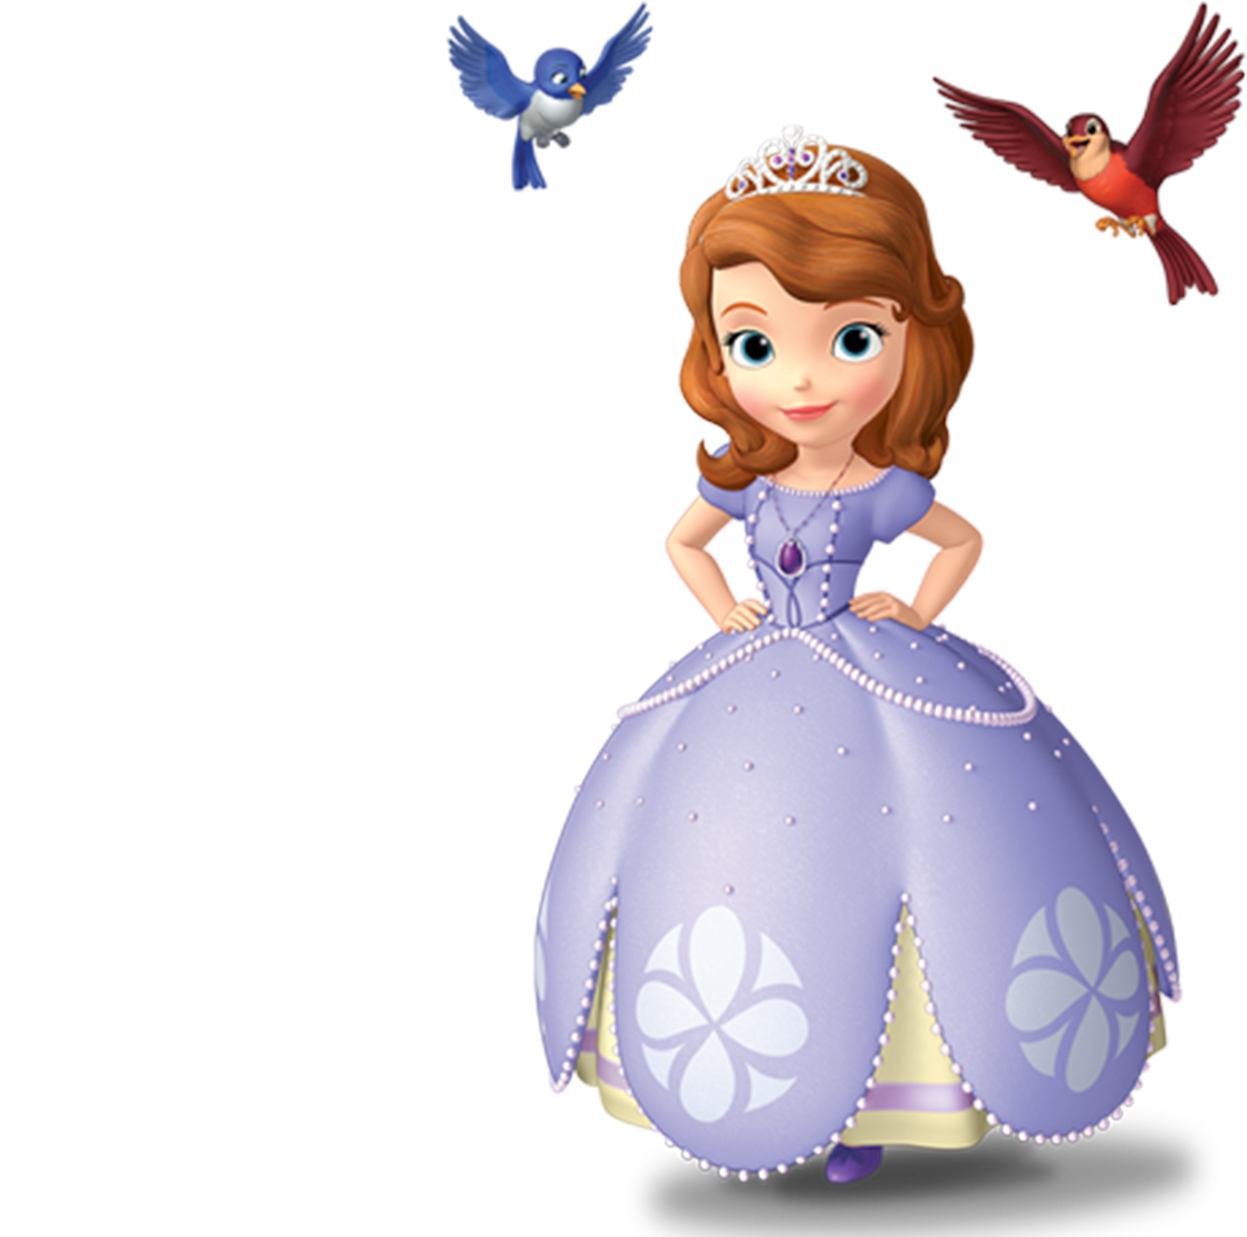 Sofia the First Free Party Printables and Images Is it  : Sofia the first free printable kit 033 from eng.ohmyfiesta.com size 1247 x 1237 png 653kB